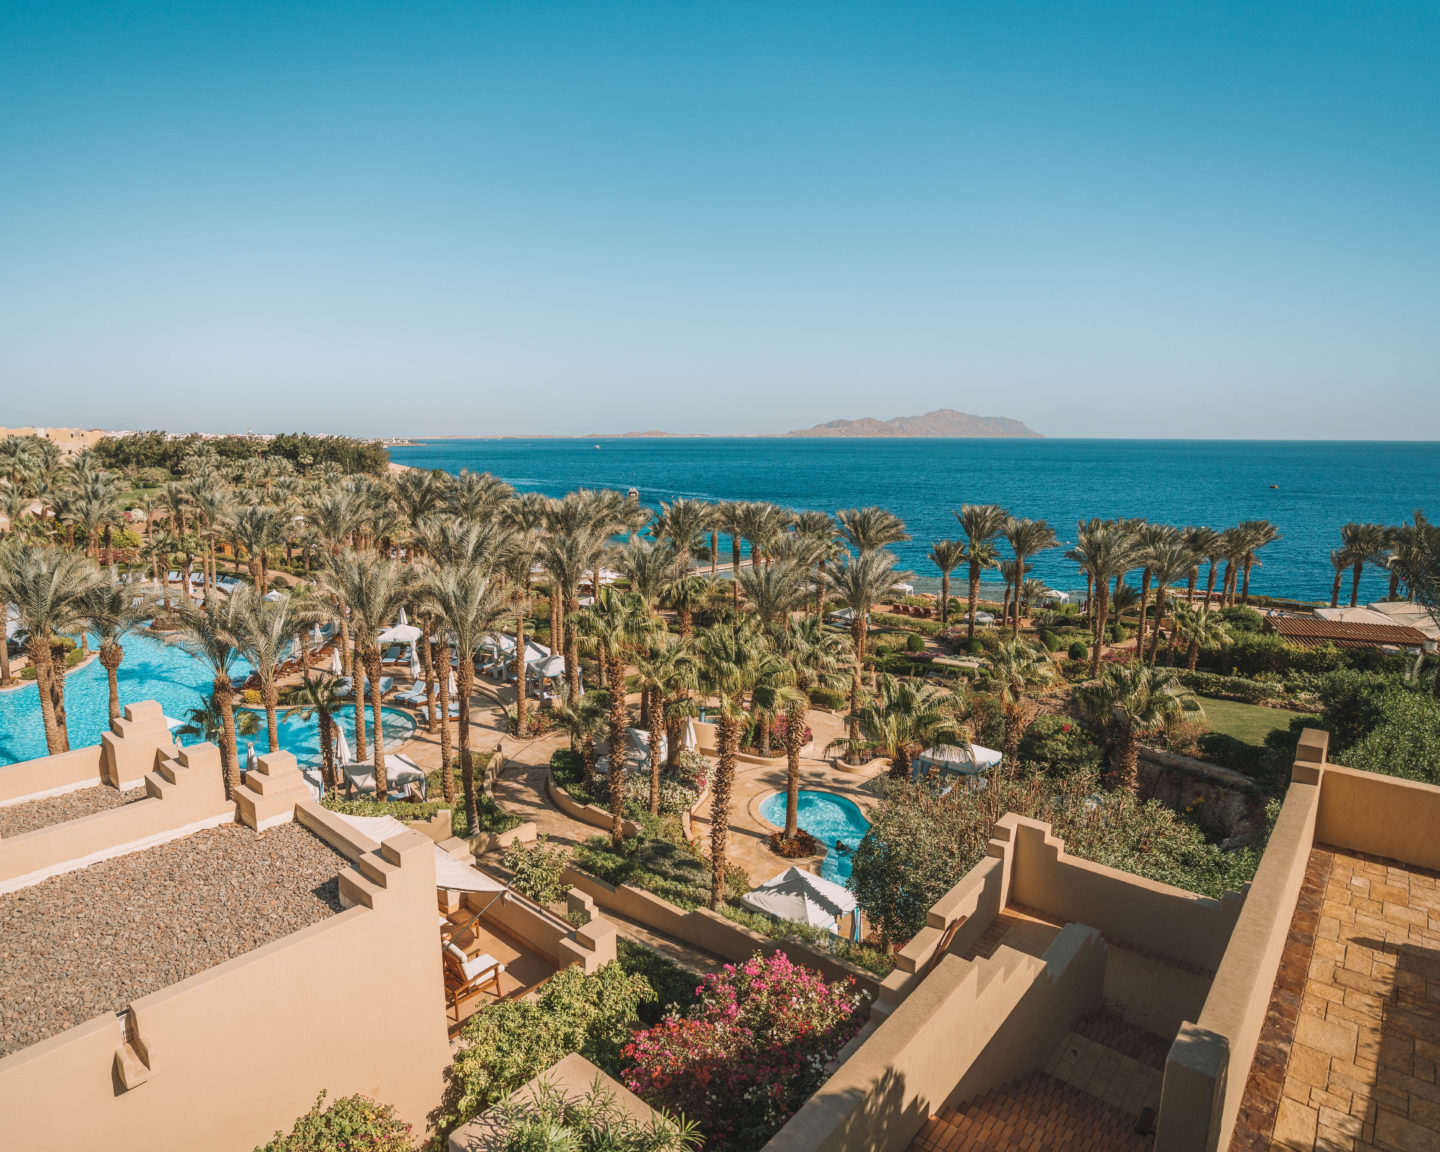 view from the balcony at Four Seasons Sharm El Sheikh